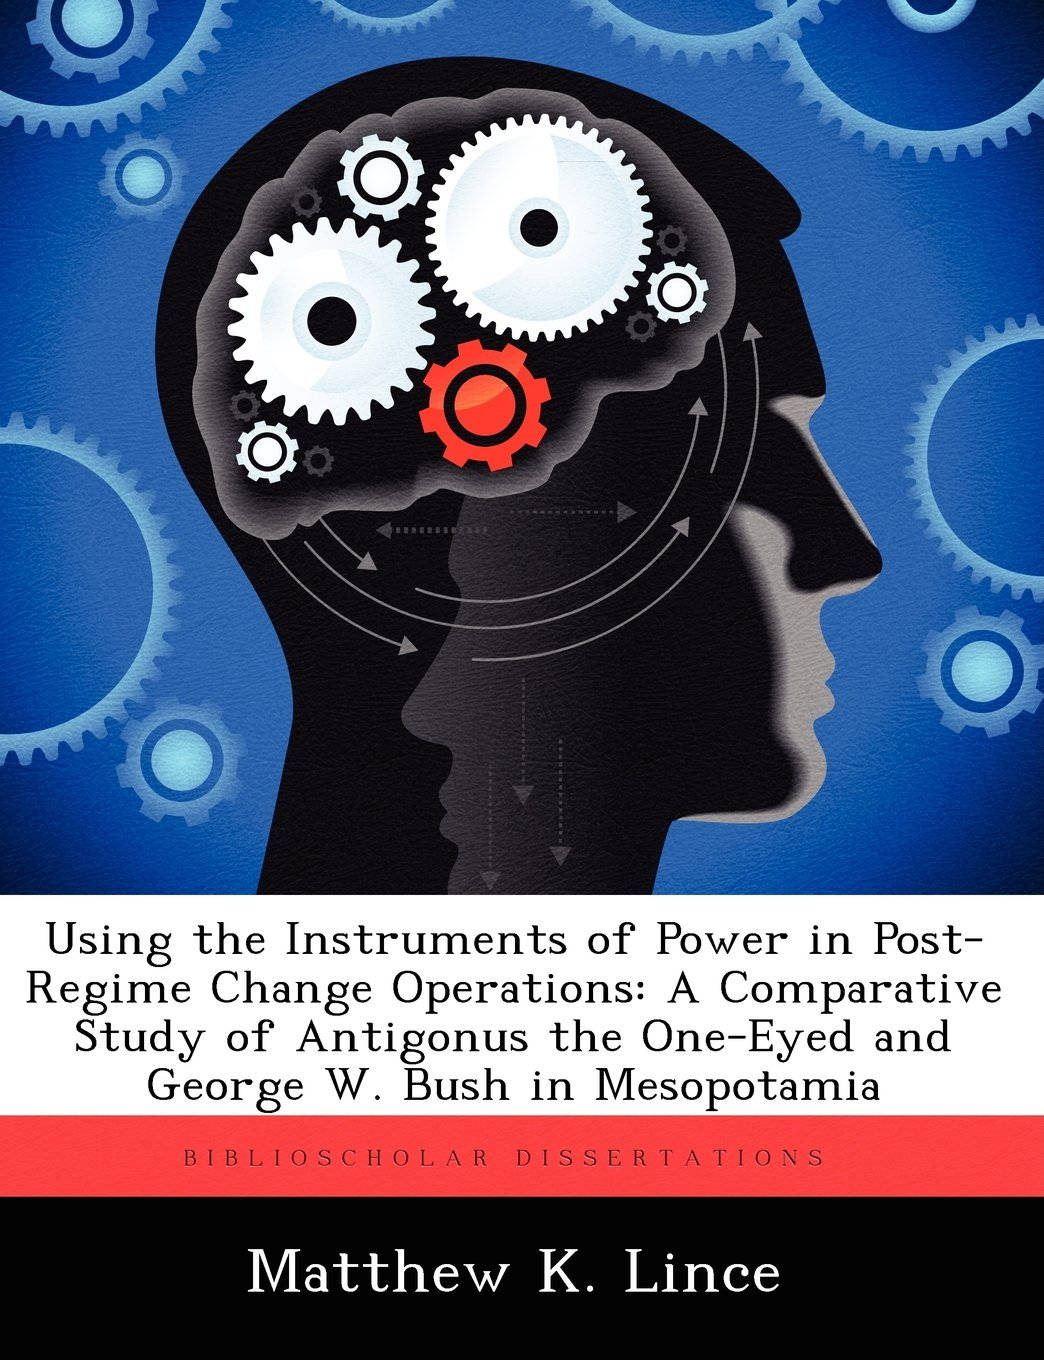 Read Online Using the Instruments of Power in Post-Regime Change Operations: A Comparative Study of Antigonus the One-Eyed and George W. Bush in Mesopotamia pdf